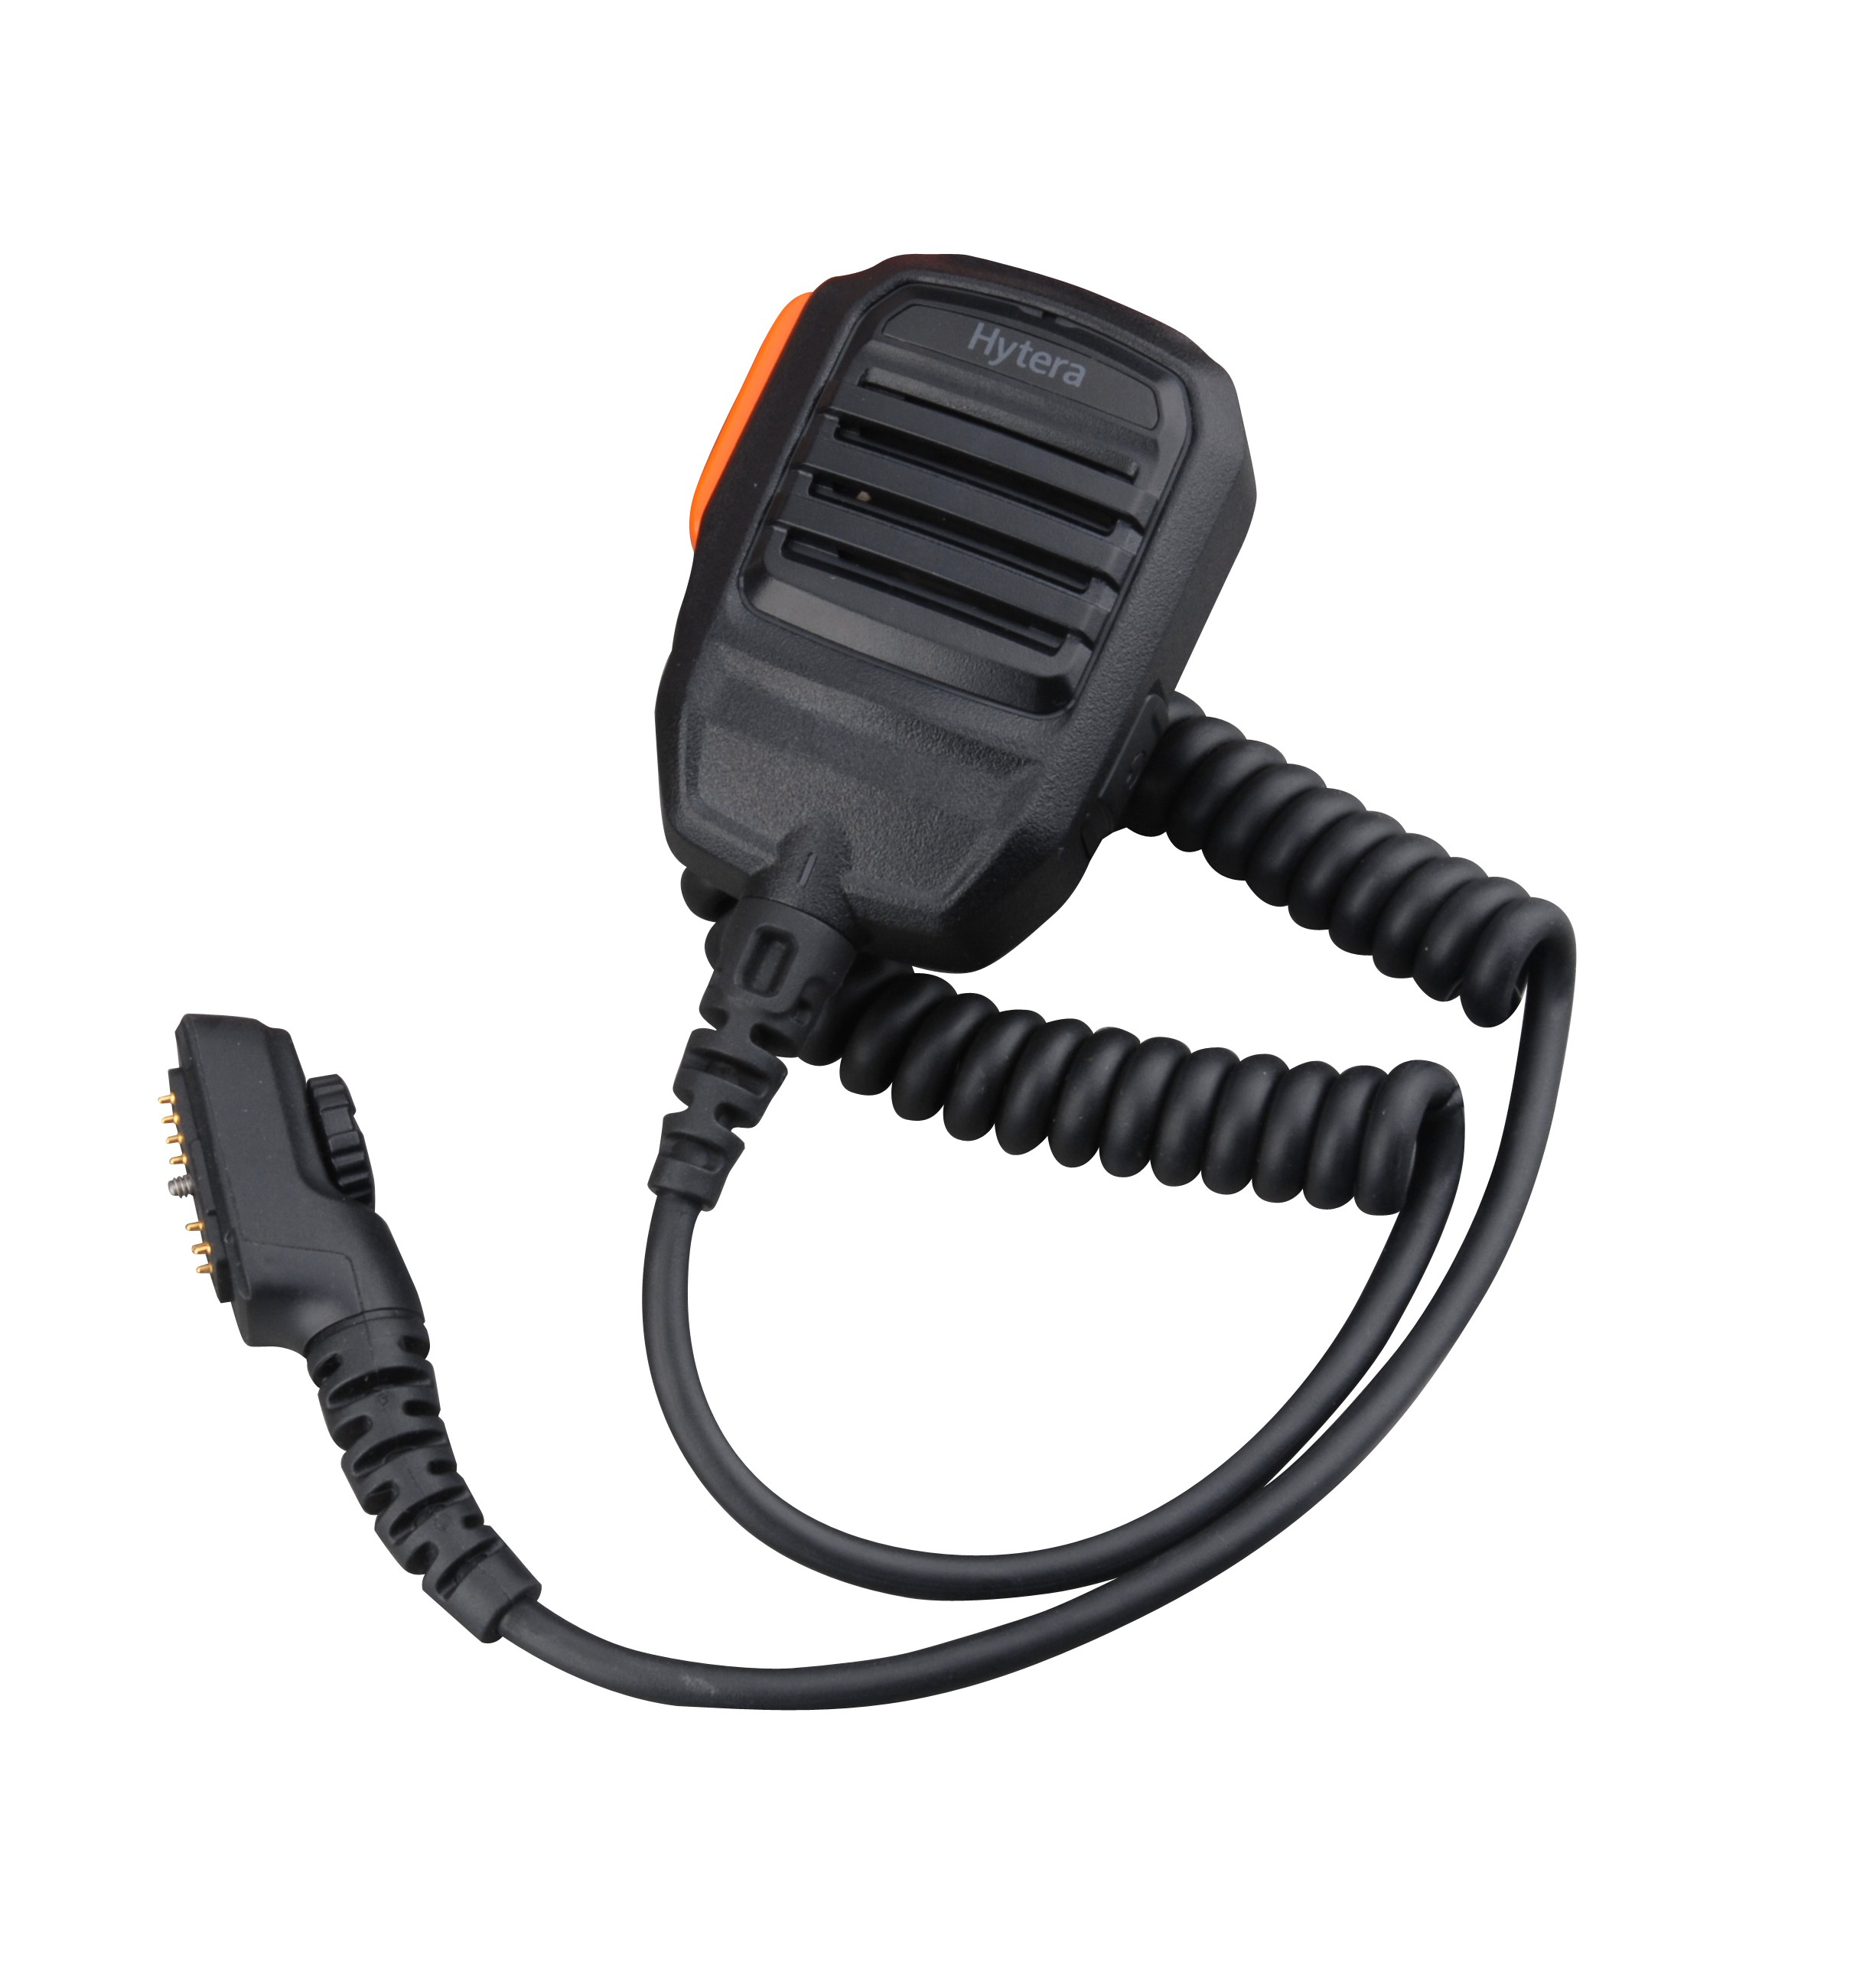 Hytera - IP67 Waterproof Remote Speaker Microphone